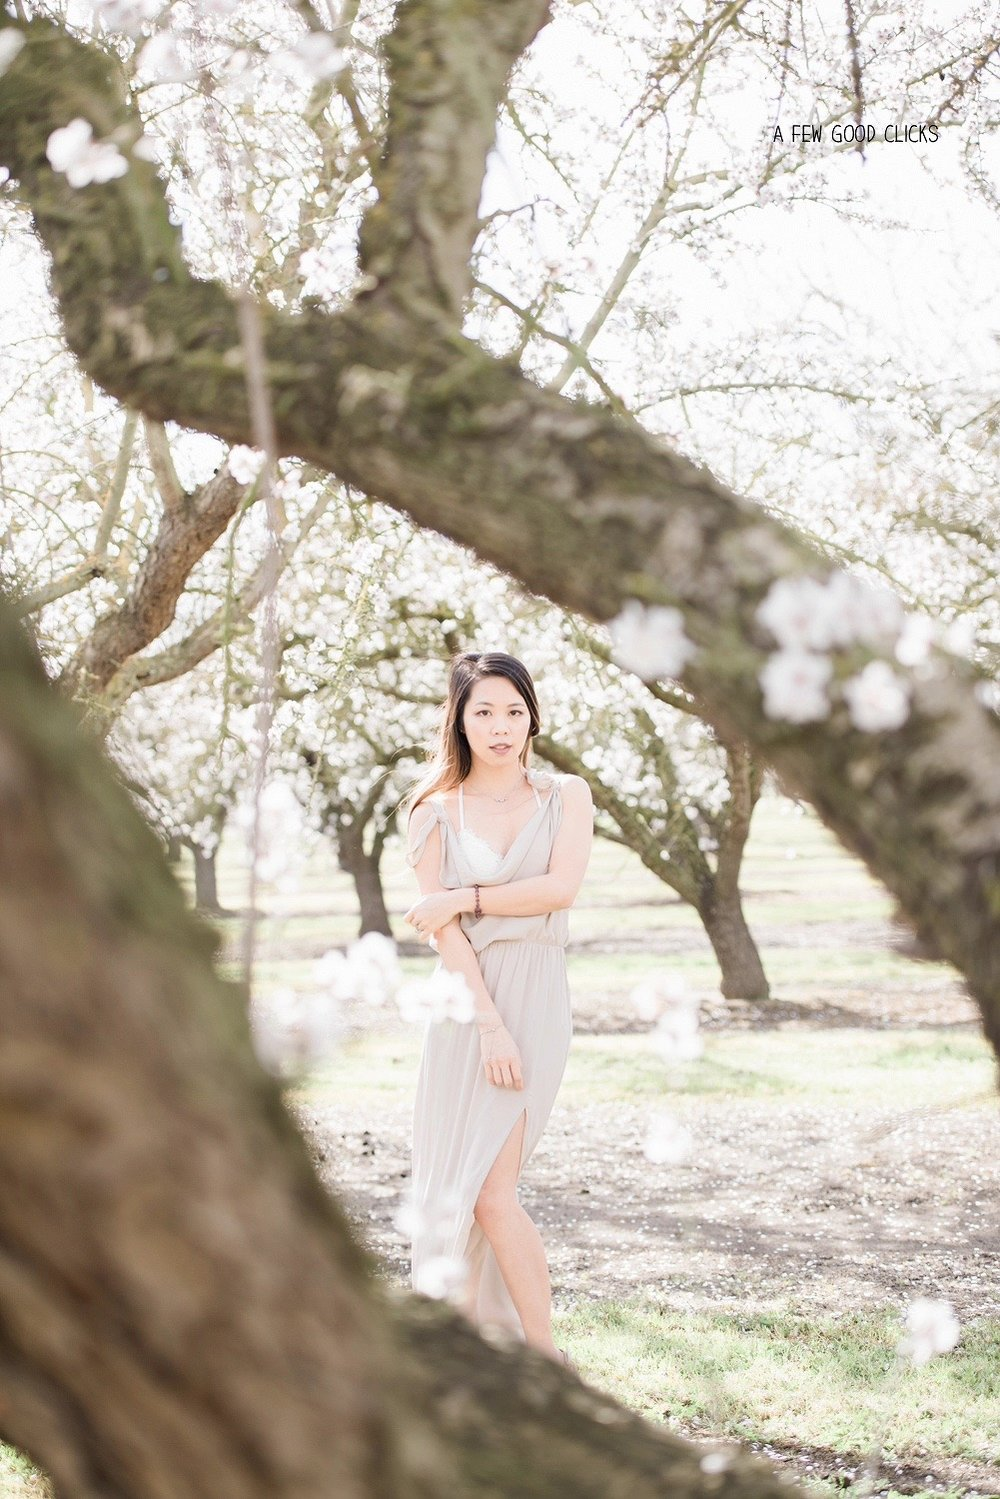 almond-blossom-lifestyle-portrait-photography-by-afewgoodclicks-net-25.jpg